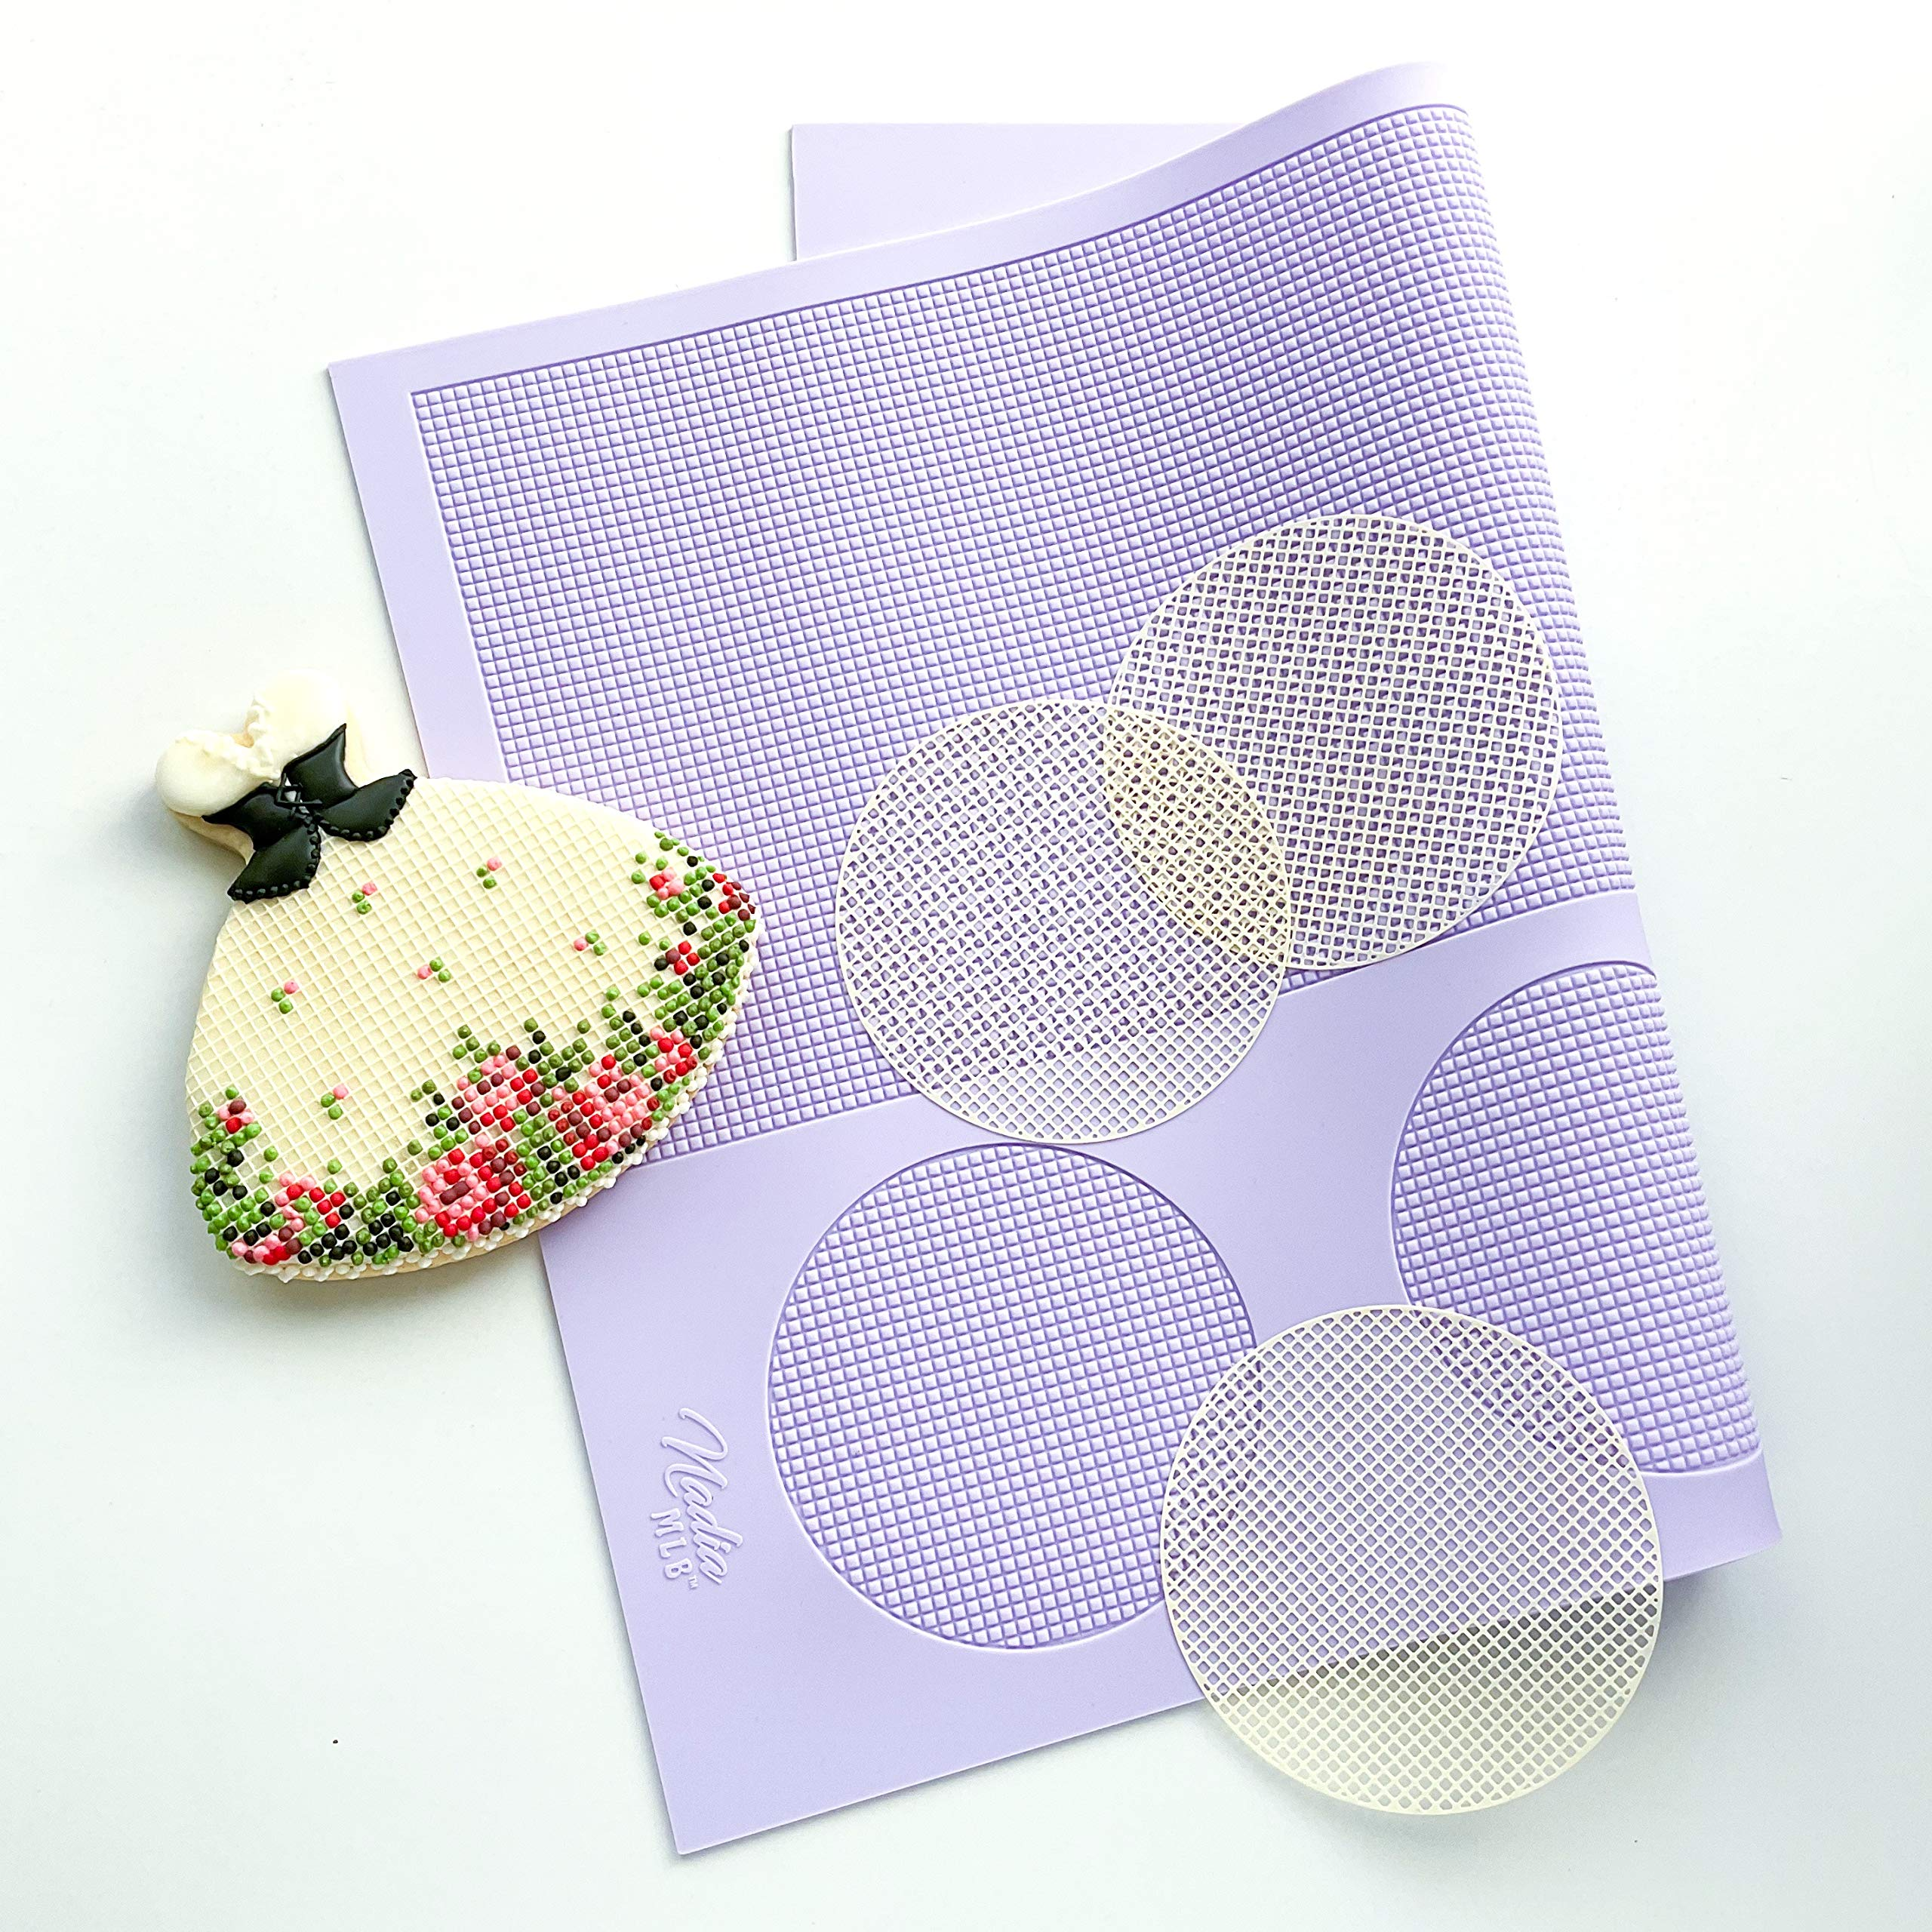 Grid silicone mat for cookie and cake decorating